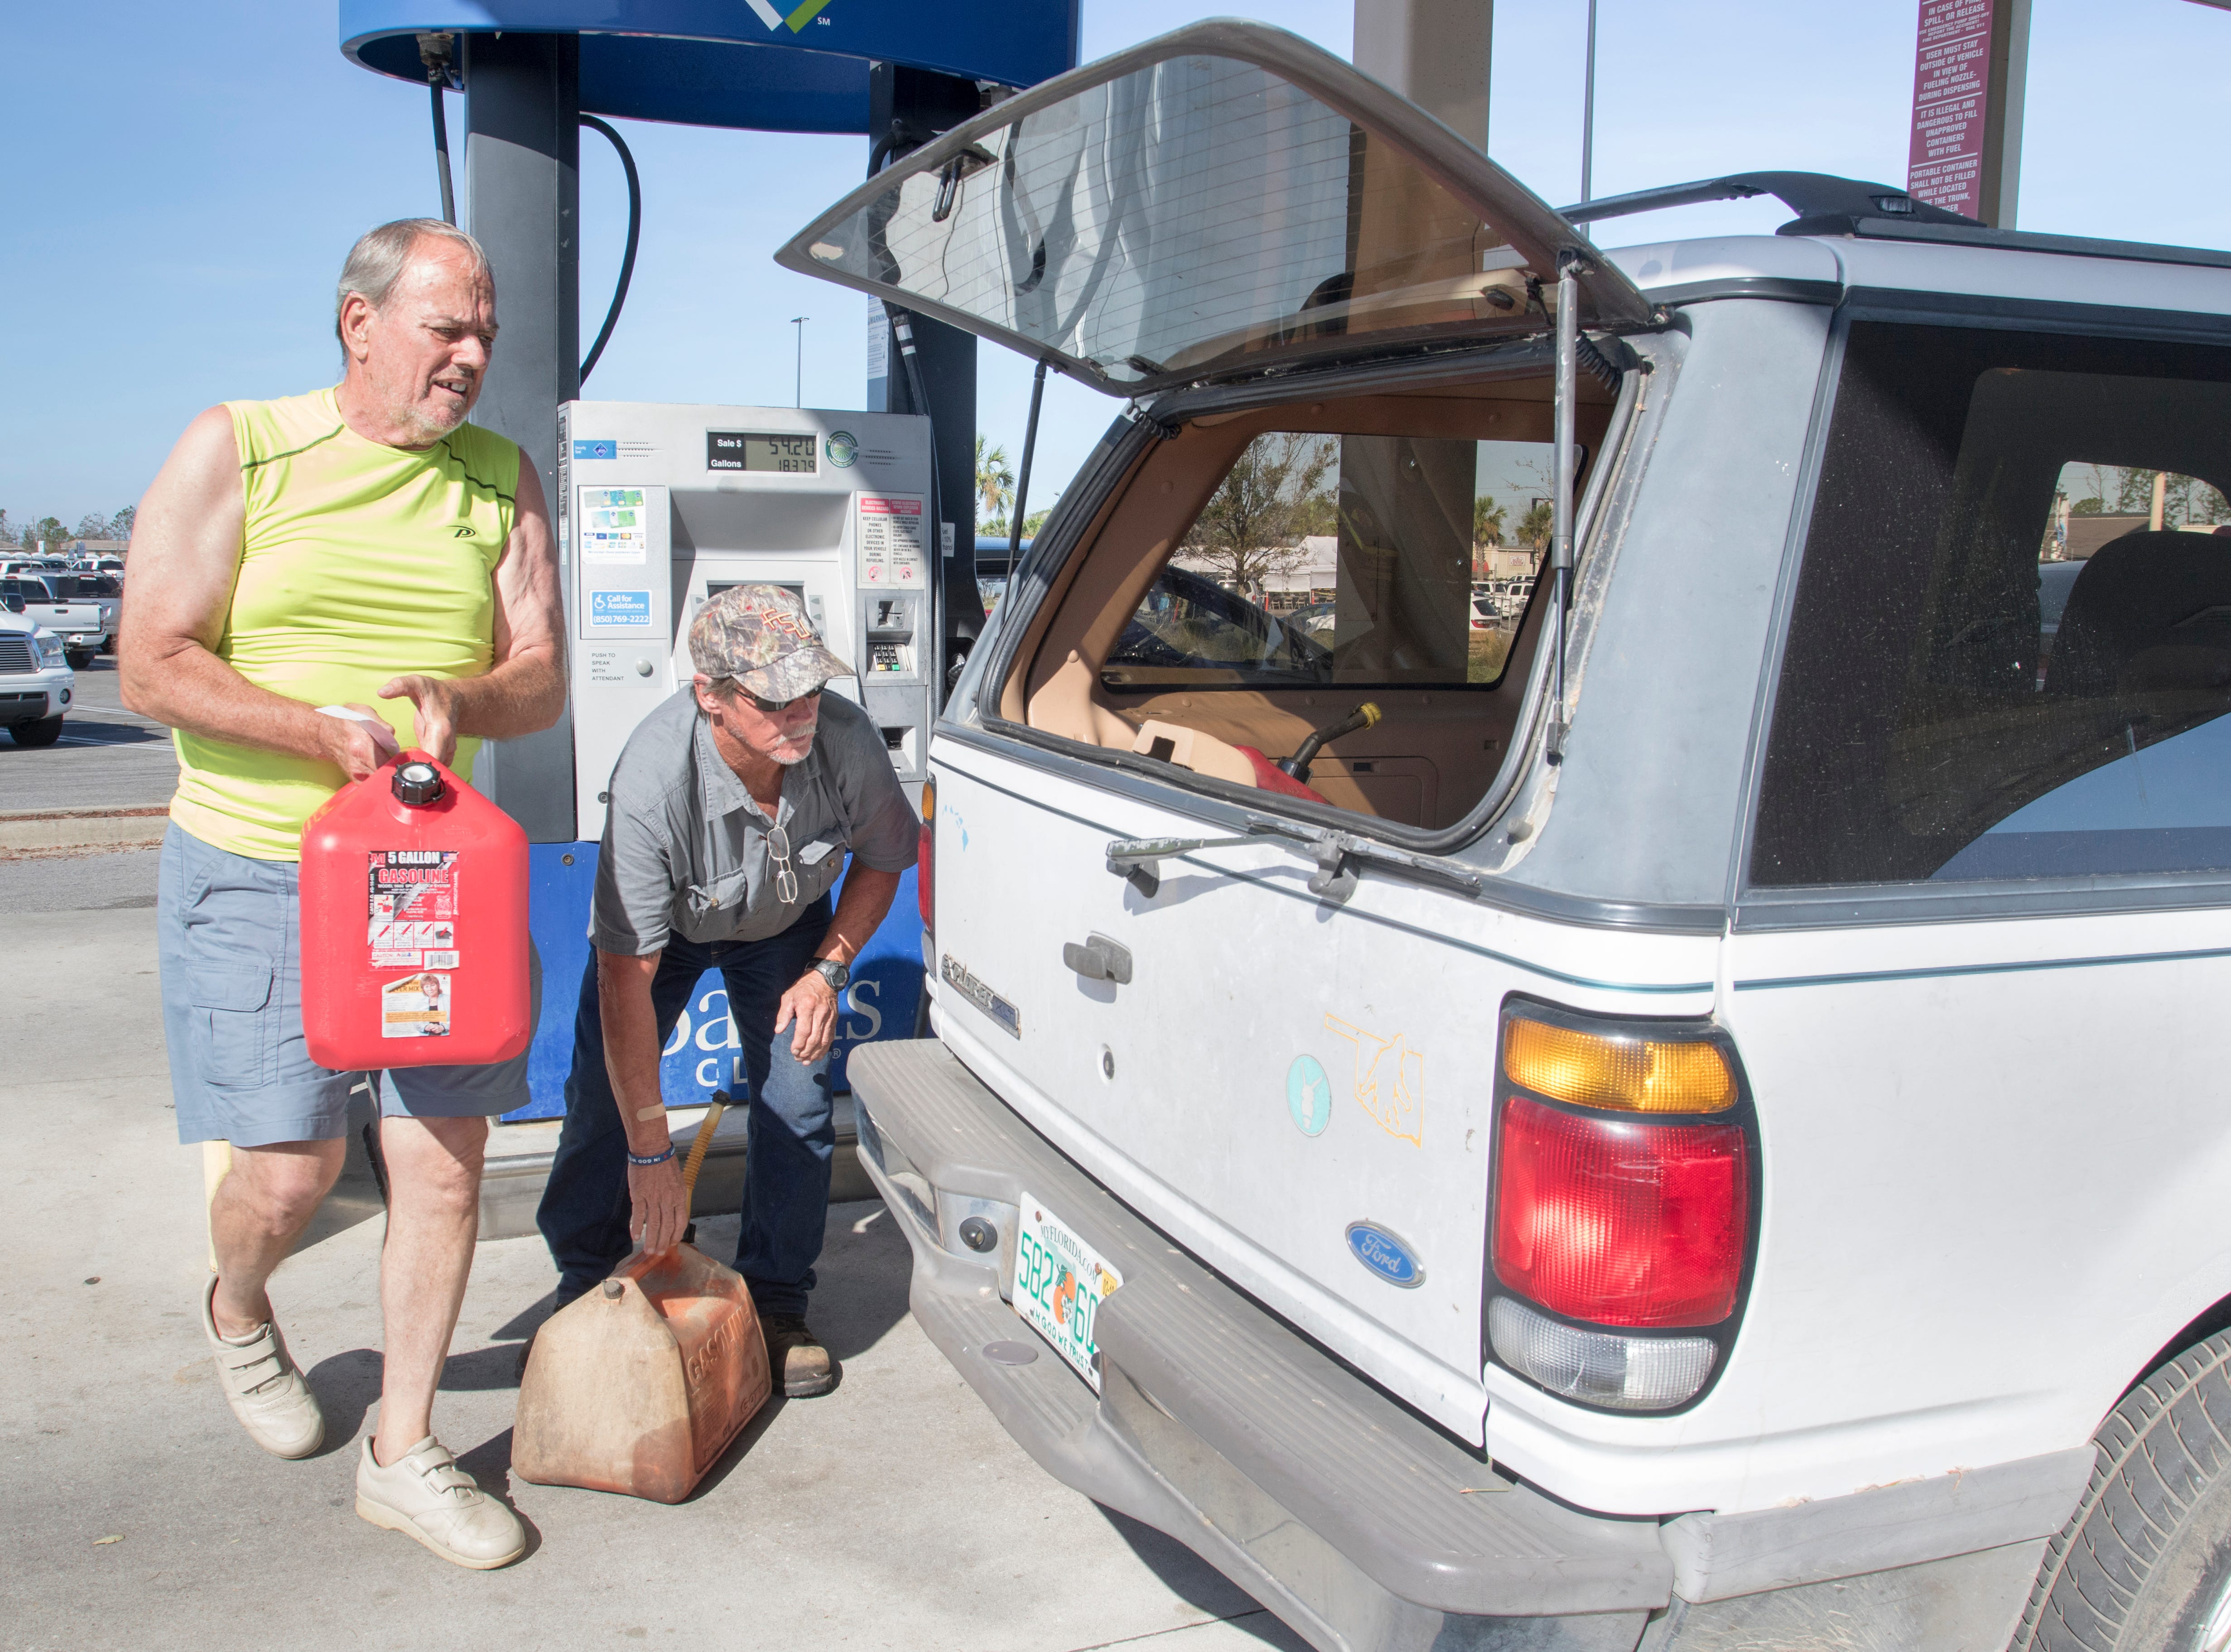 Larry Holland, left, and Thomas Johnson load filled gas cans into their vehicle at the Sam's Club on West 23rd Street after Hurricane Michael in Panama City, Florida on Wednesday, October 17, 2018.    Drivers are thrilled that their wait for gas has gone from up to 4 hours earlier in the week down to 30 to 45 minutes today.